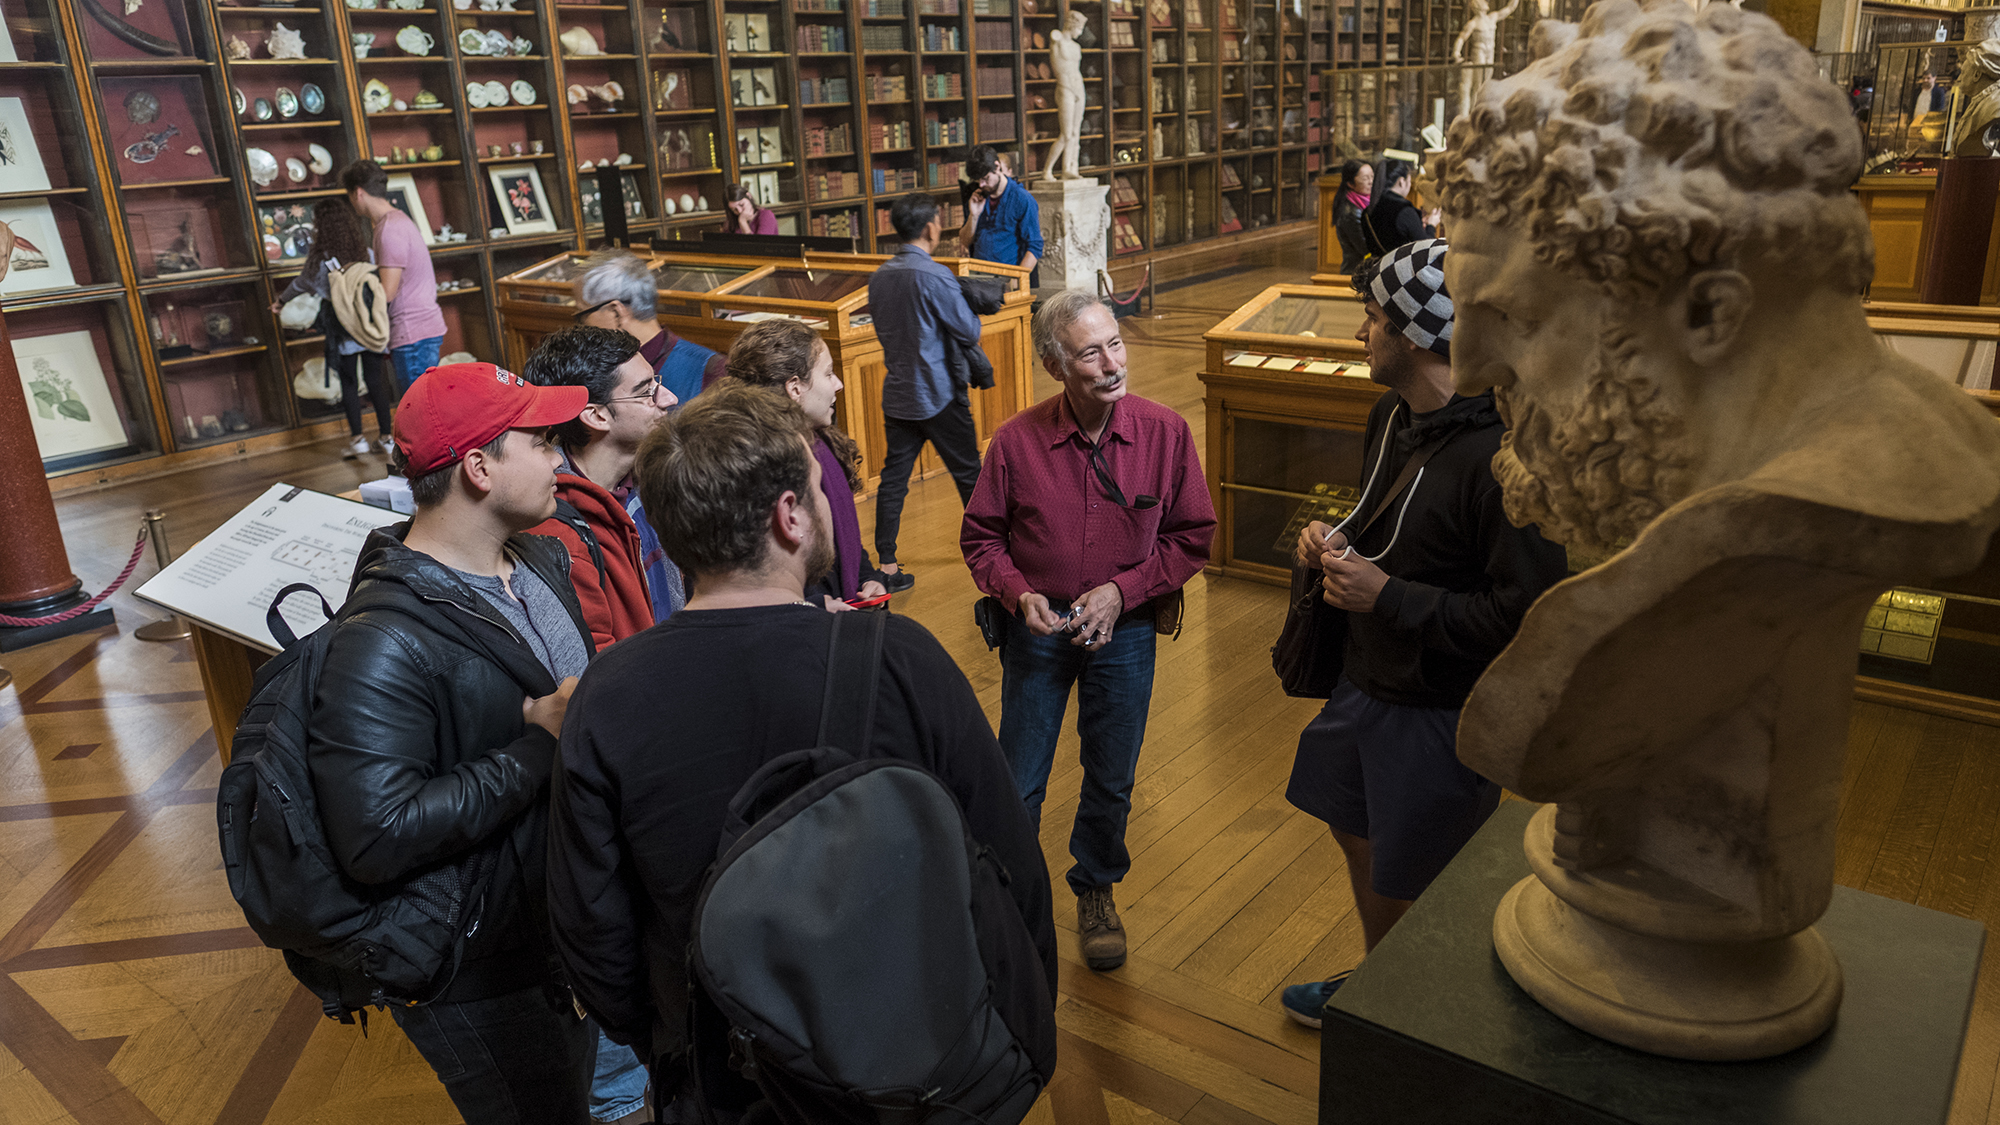 John Whittaker, professor of anthropology, took students to the British Museum while teaching in London during the fall of 2017.